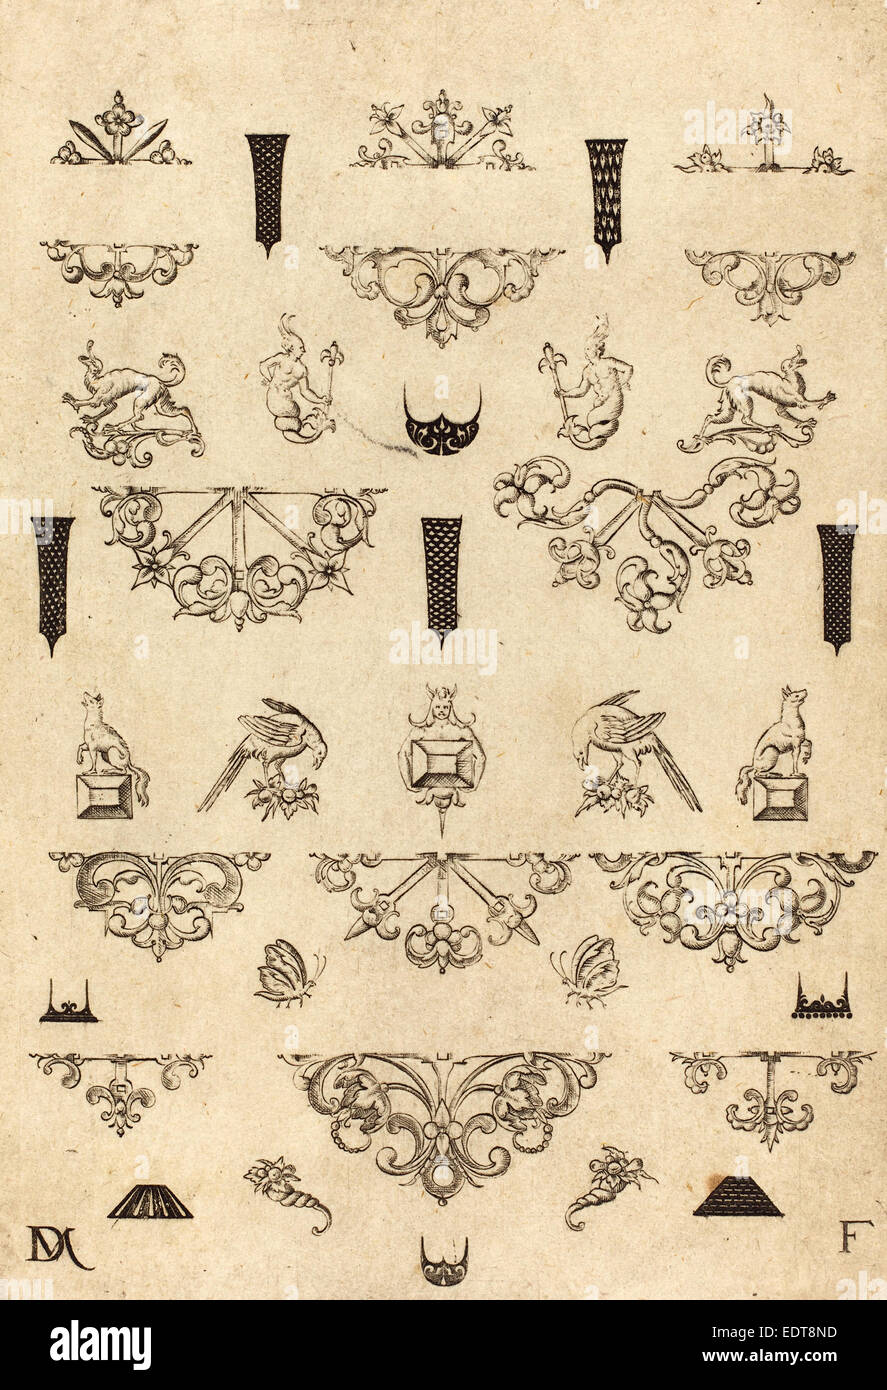 Daniel Mignot (German, active 1593-1596), Eleven Different Studs and Twenty-Three Ornaments, 1593, engraving - Stock Image